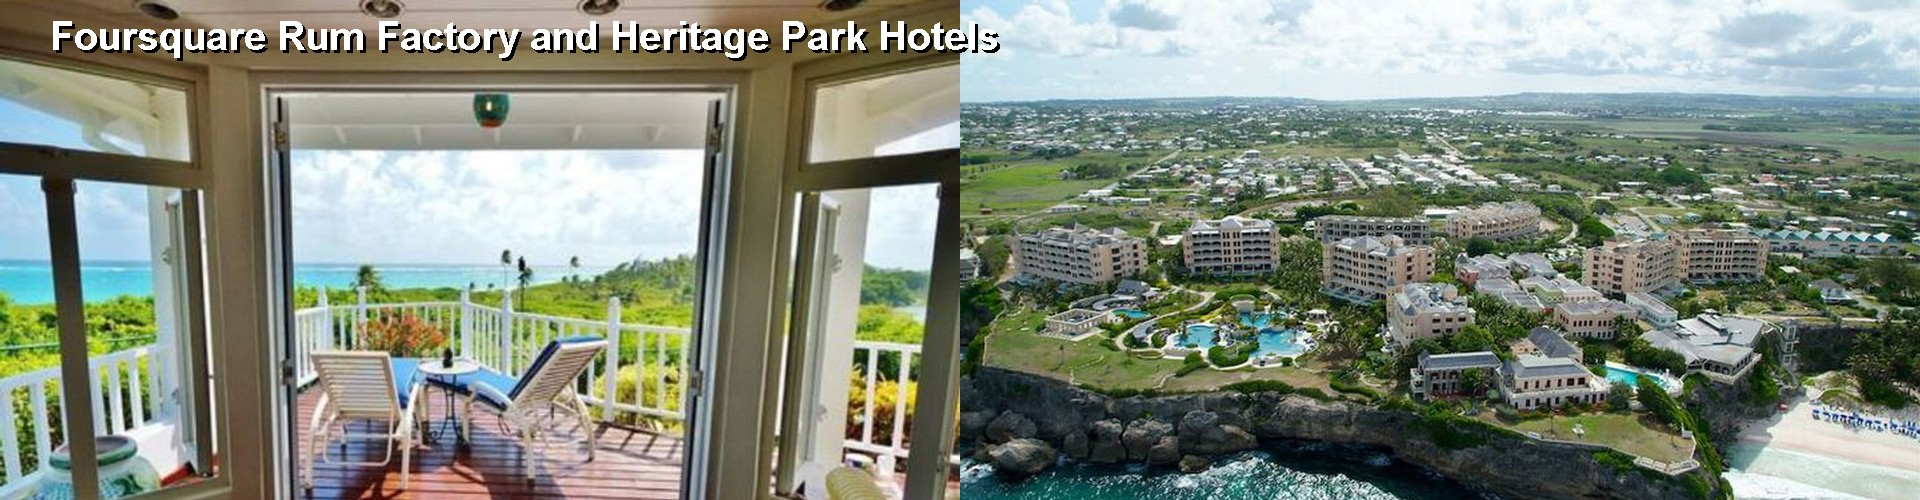 5 Best Hotels near Foursquare Rum Factory and Heritage Park